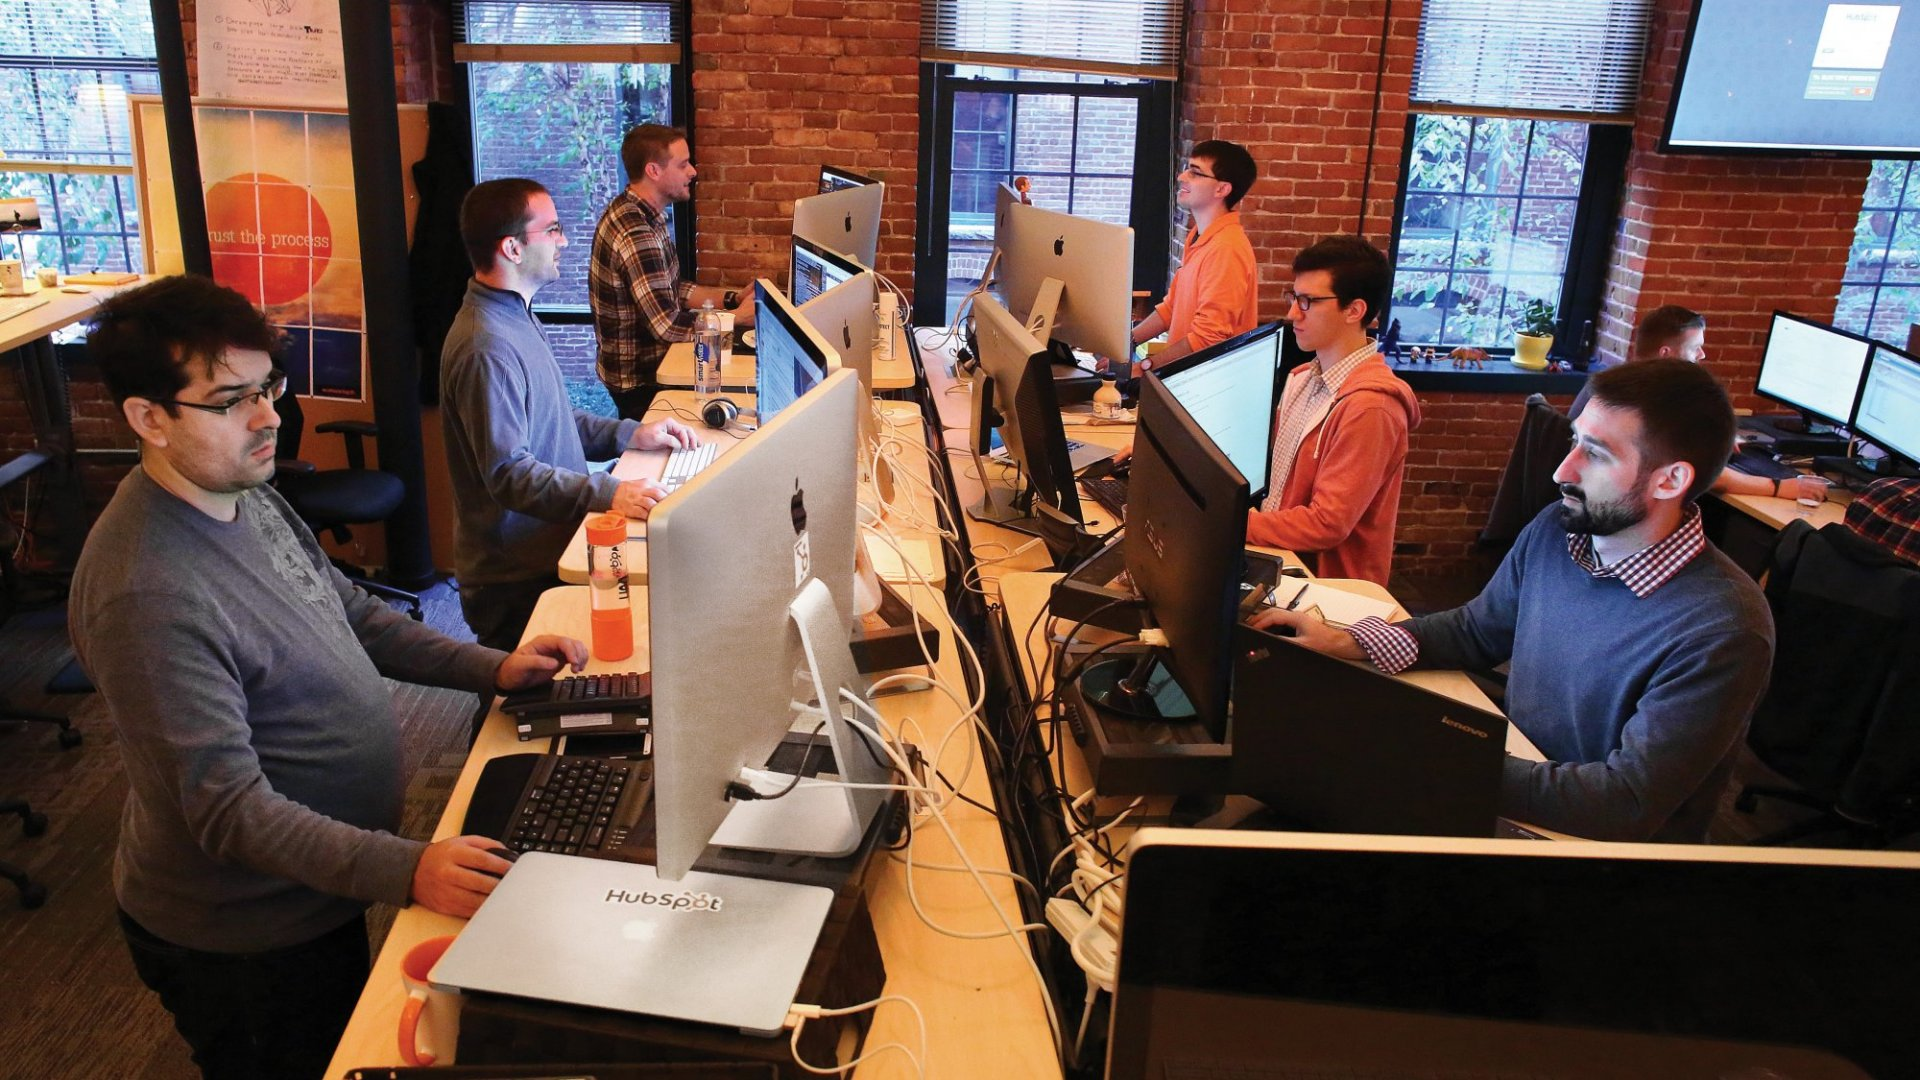 HubSpot is living a PR nightmare. Strange that the customers are now defending it.